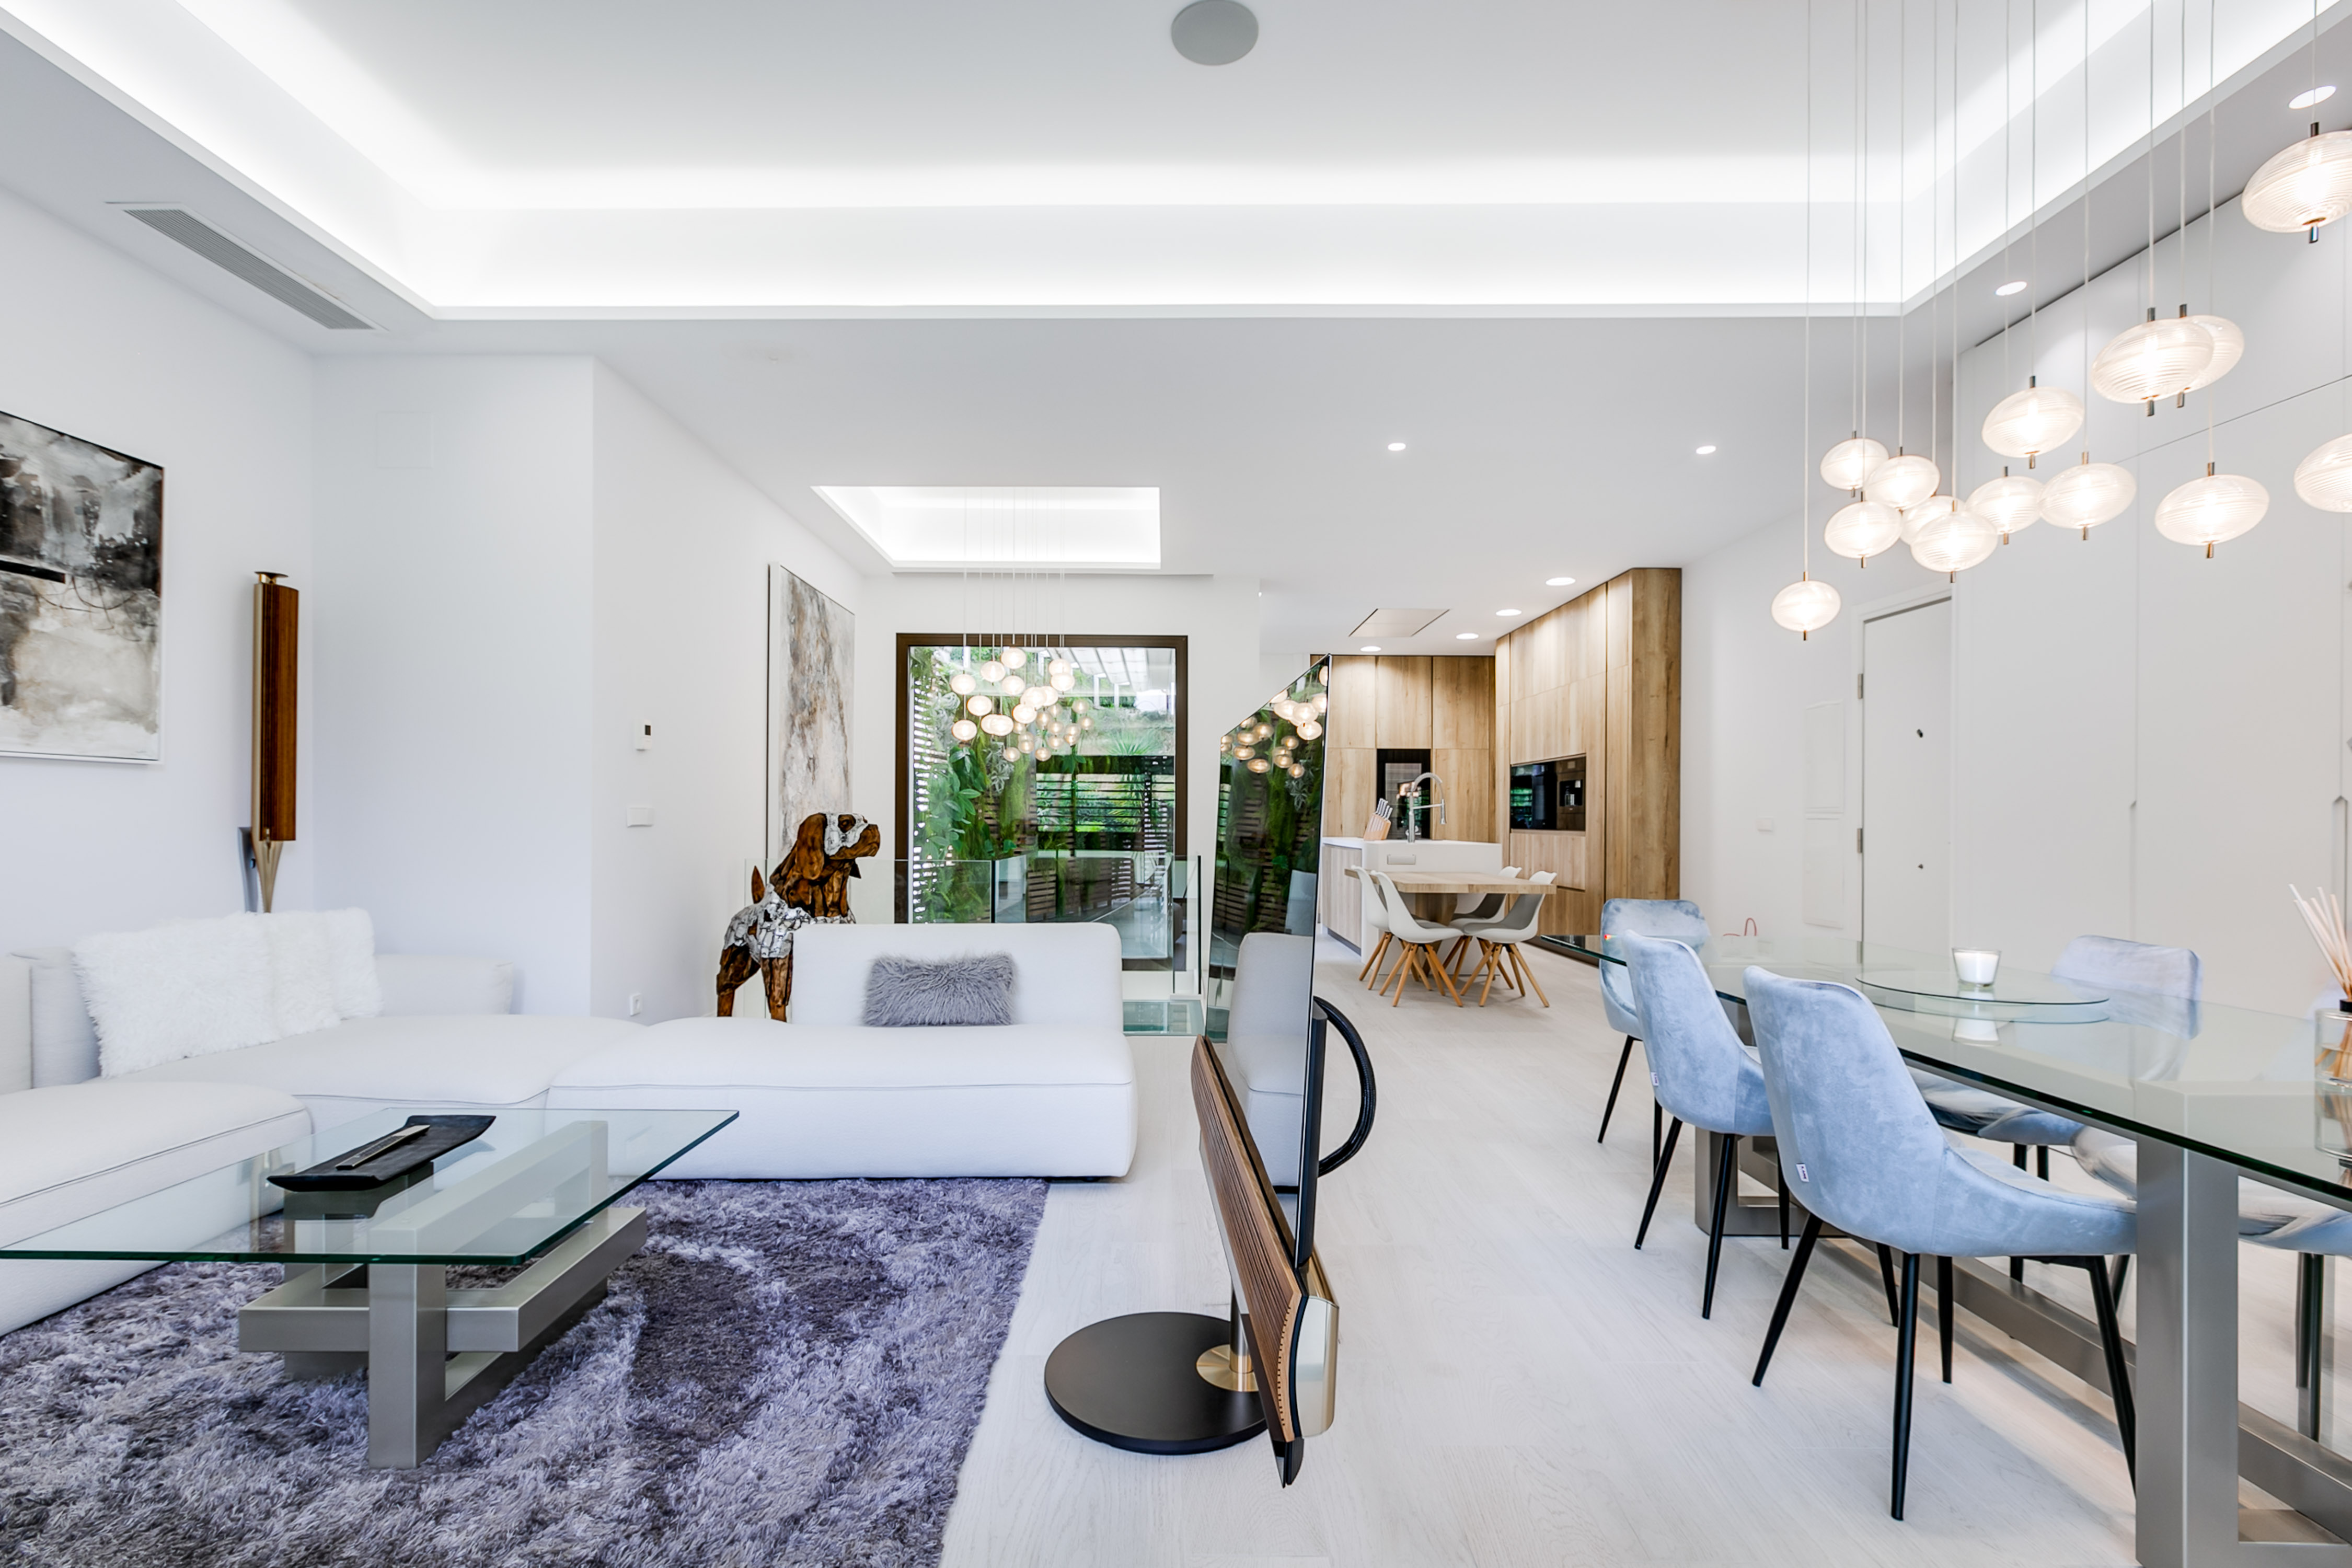 Luxury housing does not lose its luster for foreigners